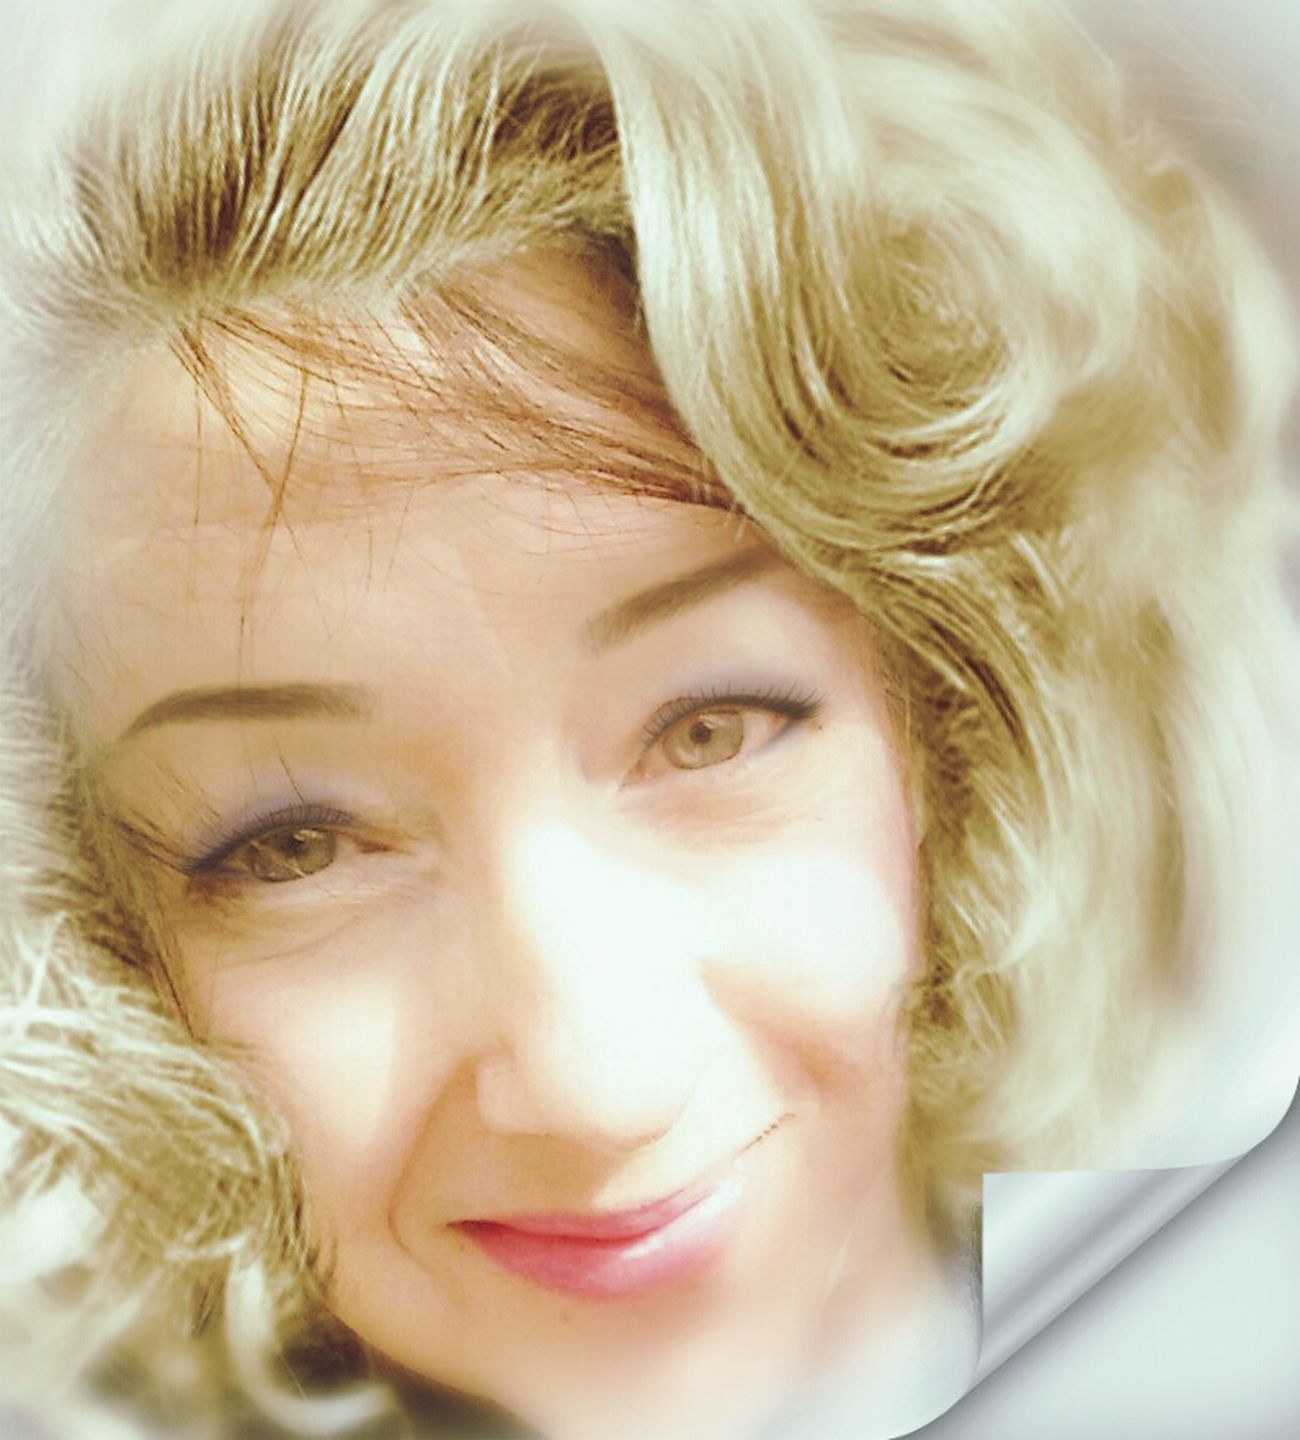 Me as Marilyn...lol Blond Hair Marilyn Monroe <3 Artistic Photo Model - Object Self Portrait Portrait Of A Woman Woman Of EyeEm Self Portrait Smiling One Woman Only